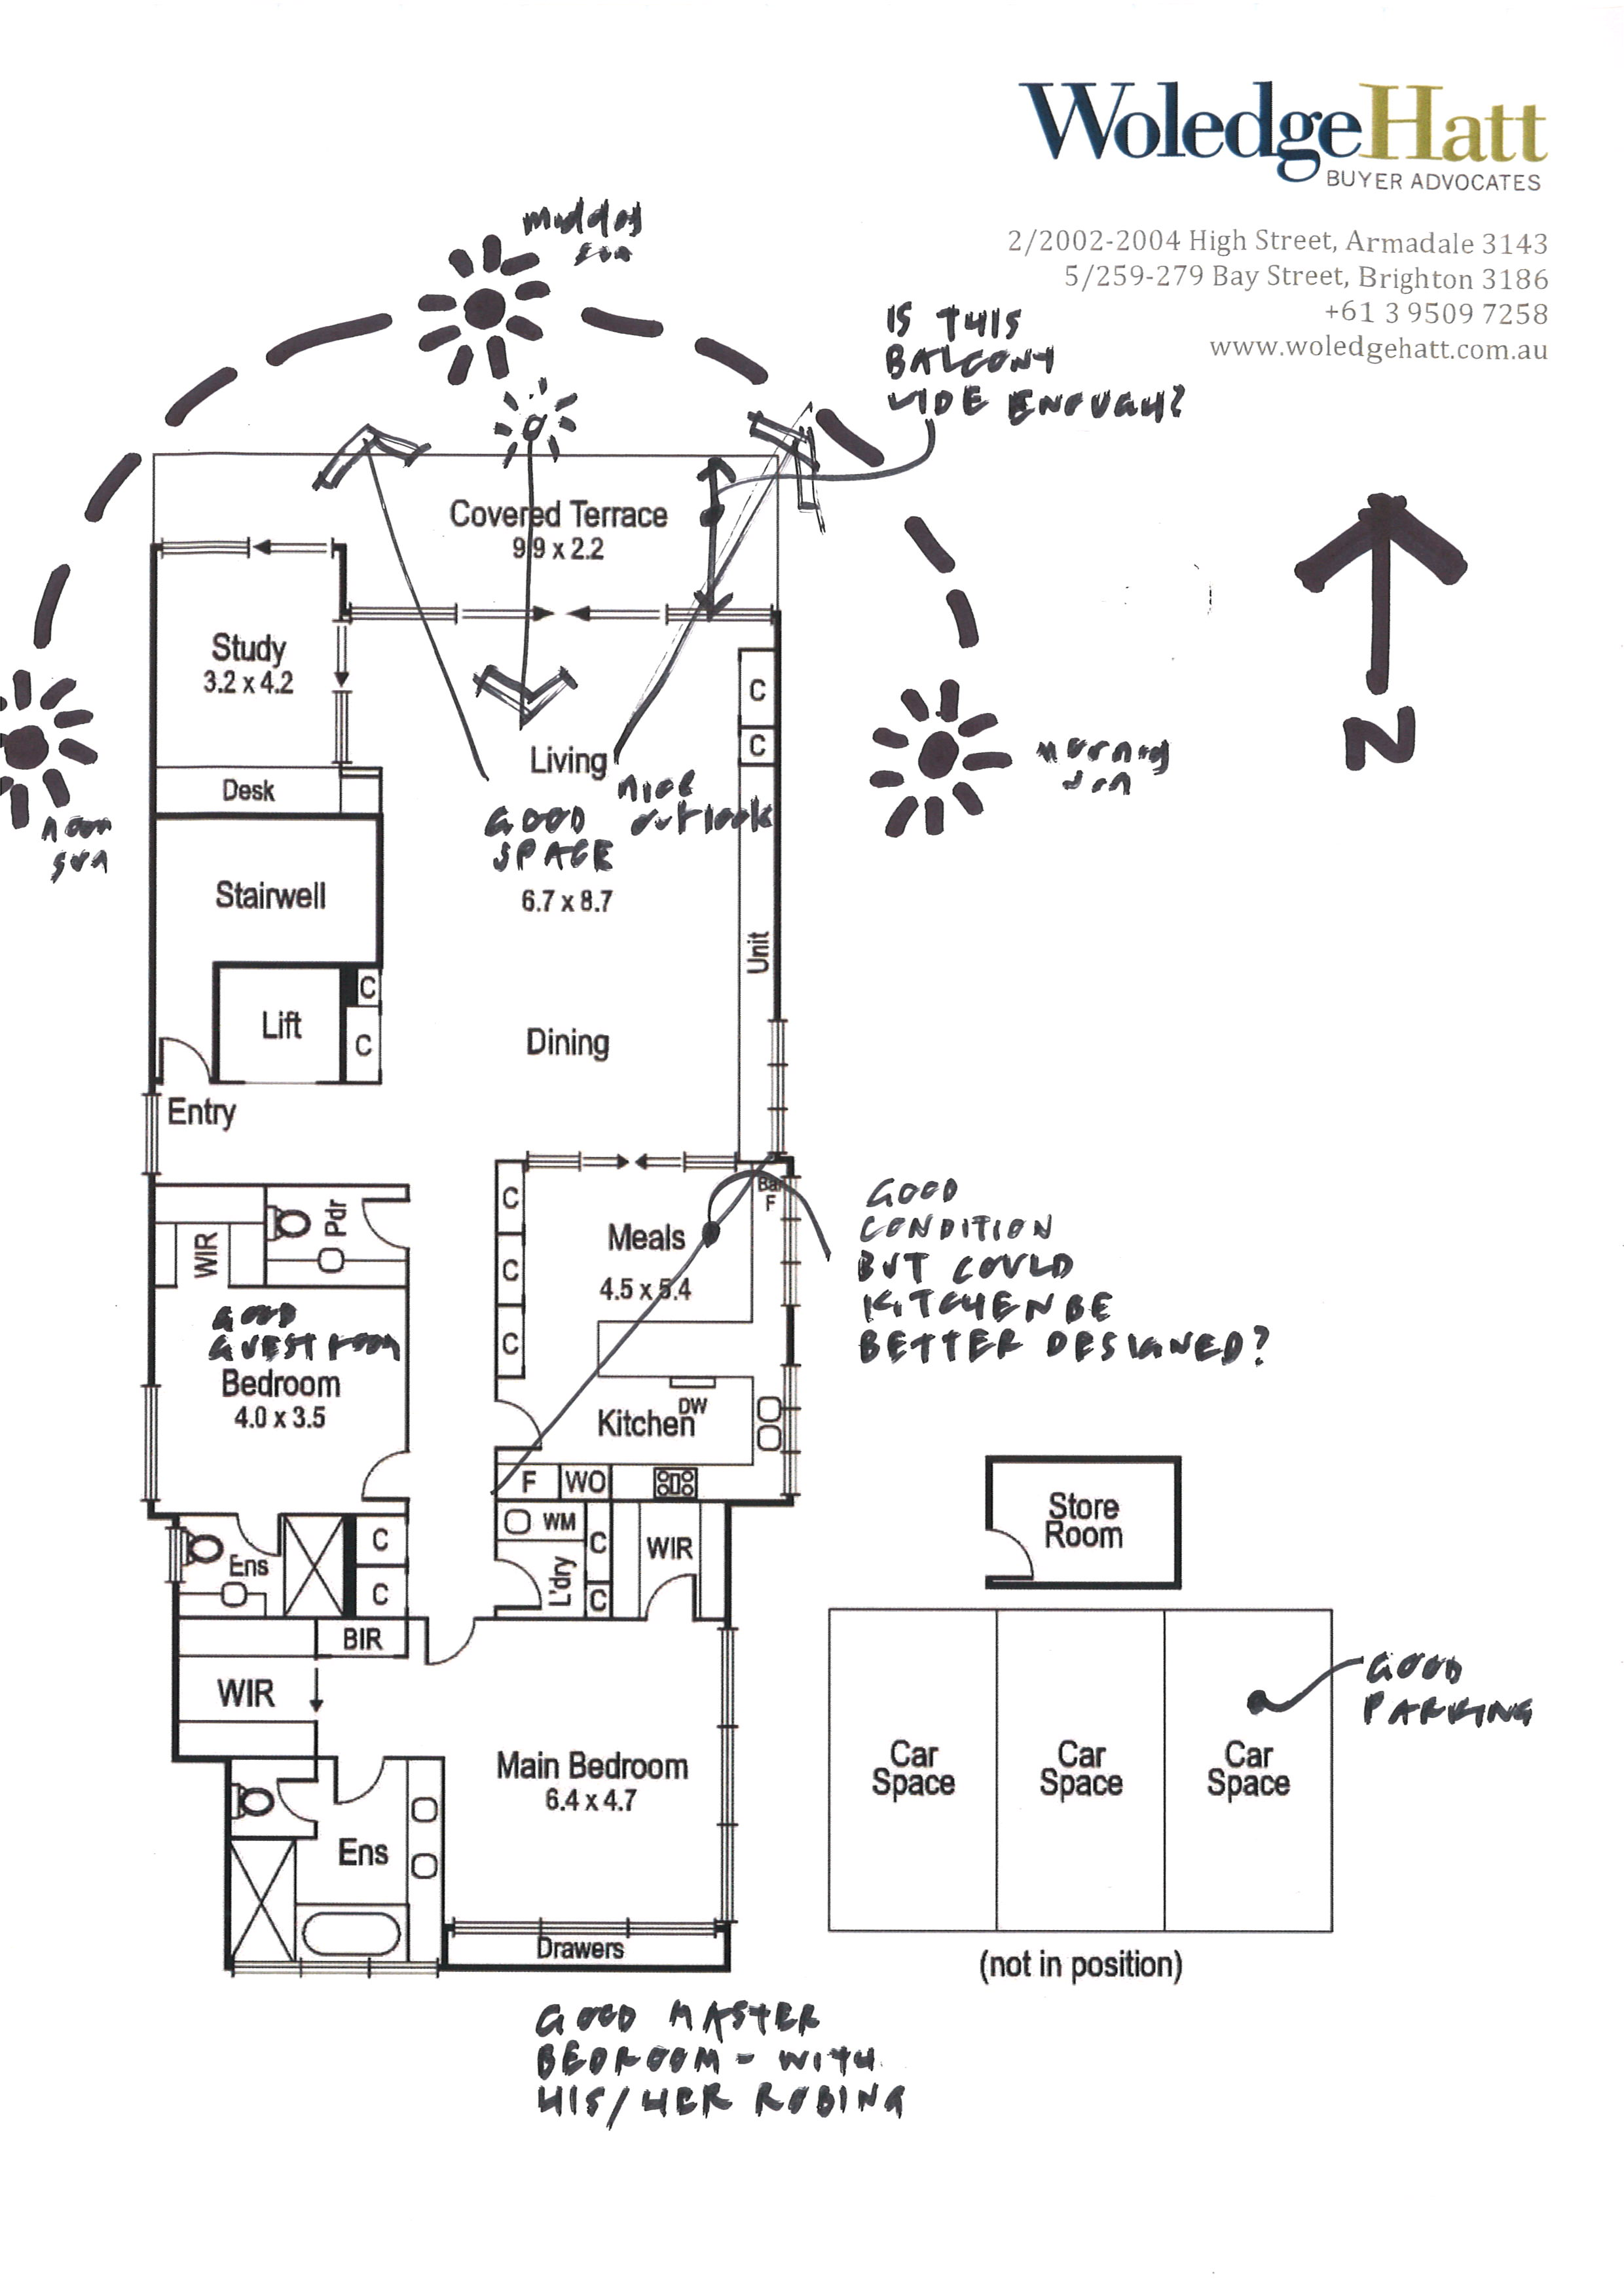 Floorplan Analysis